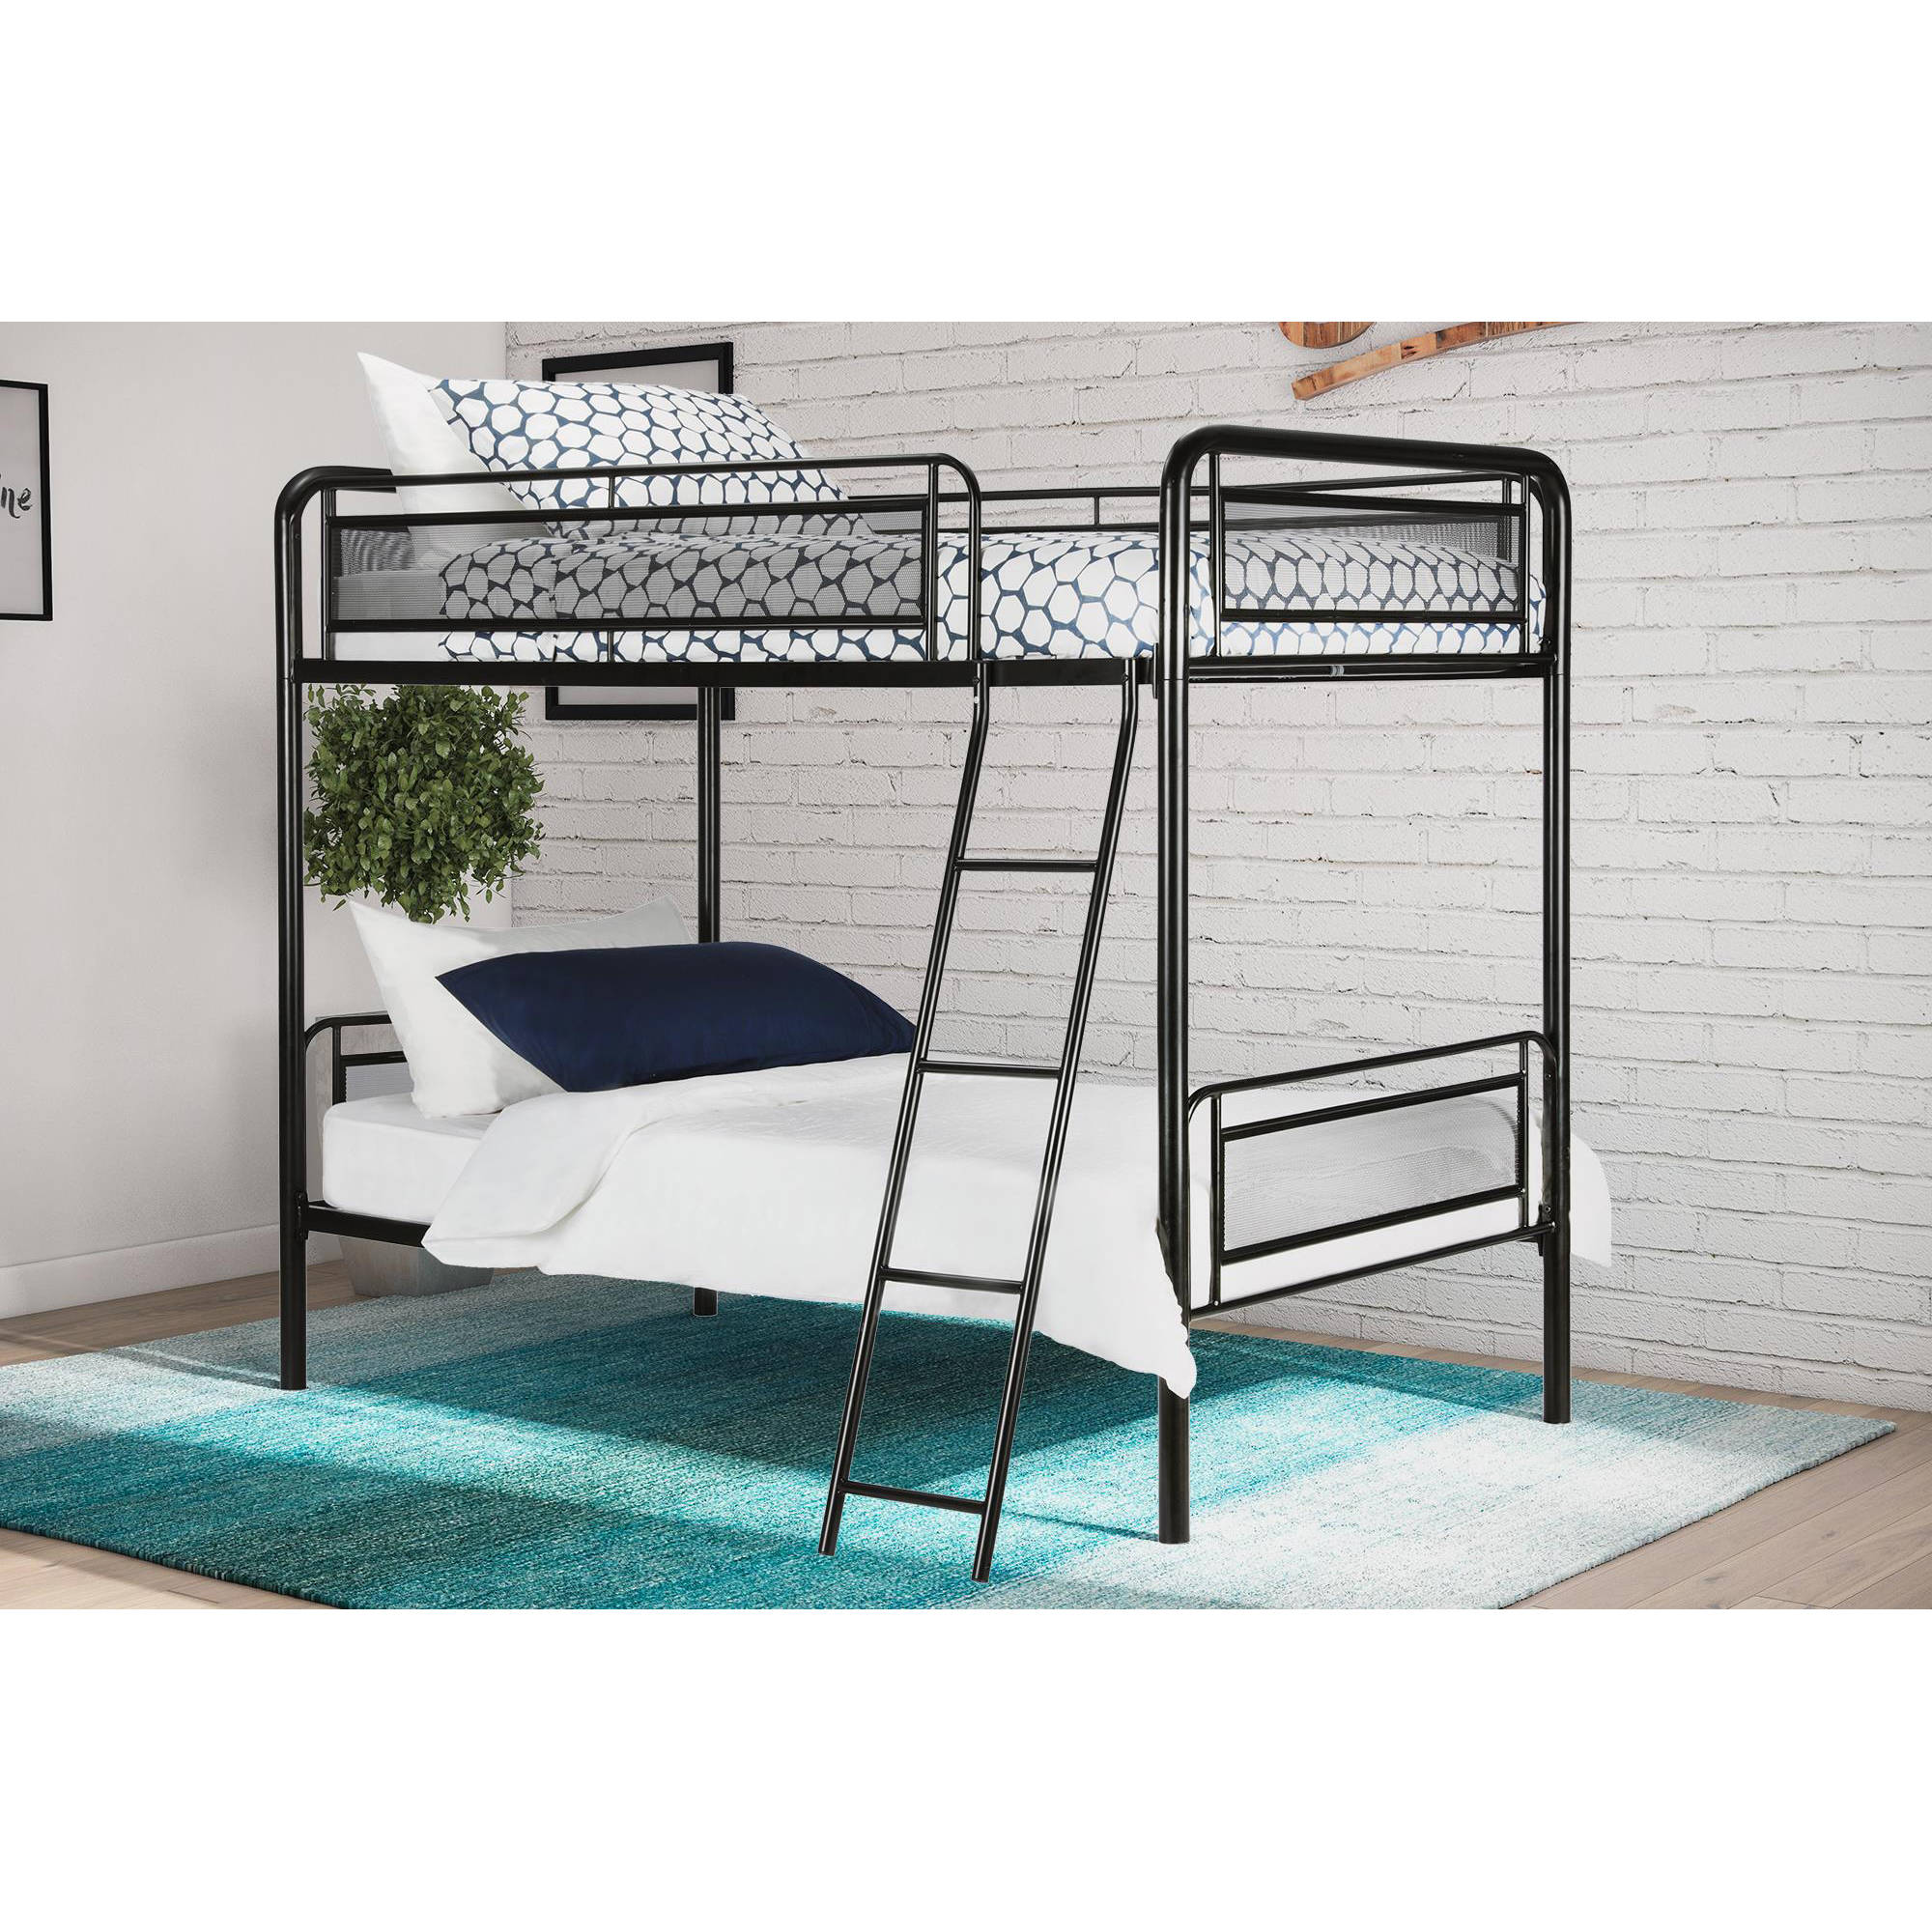 Dorel DHP Rockstar Twin Over Twin Metal Bunk Bed, Multiple Colors by Dorel Home Products